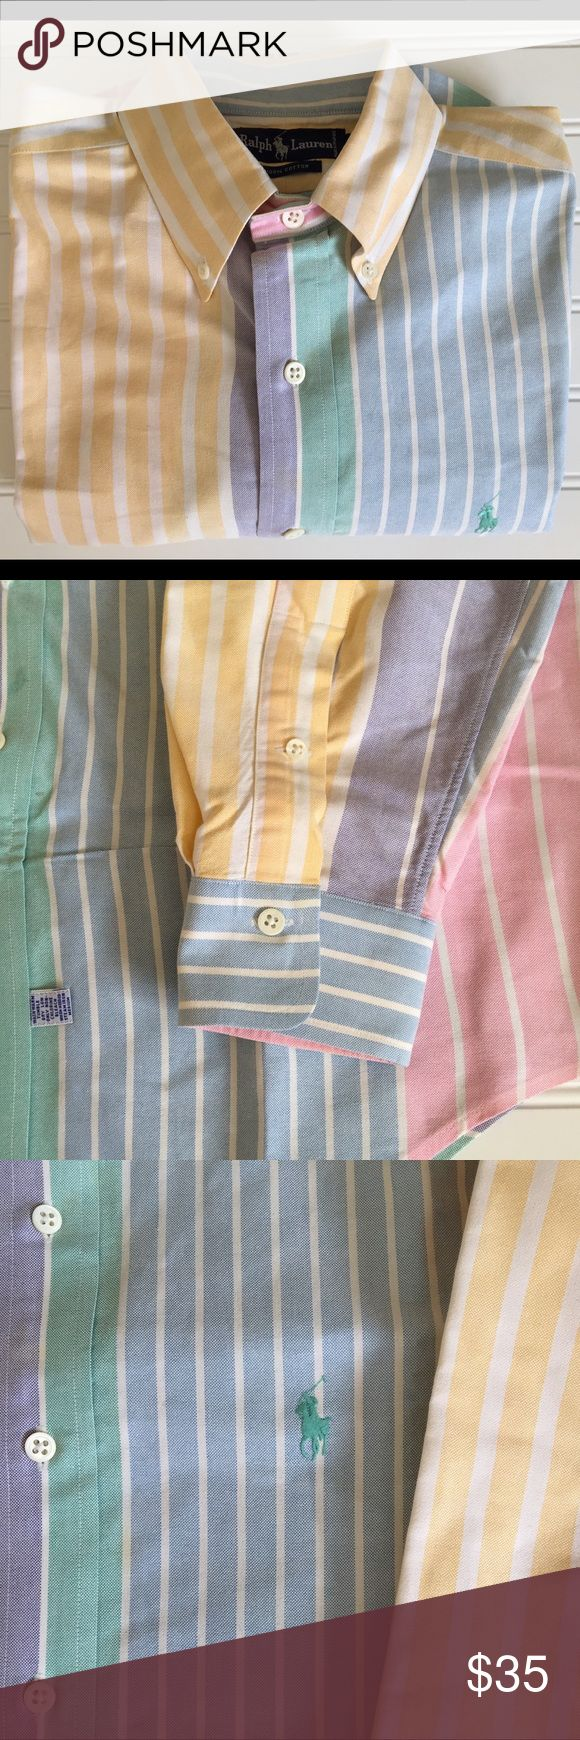 POLO RALPH LAUREN Pastel Colors!   15 1/2-34 POLO Ralph Lauren Long Sleeve Button Down DressShirt! Bright/Bold Striped Pastel Colors! Blue/Pink/Green\Yellow. Vintage Tag! Excellent Condition!  Men's Size L - 15 1/2 - 34 Armpit to armpit: 24 1/2 inches Top of back collar to bottom/back tail: 35 1/2 inches Top shoulder hem to tip of sleeve cuff: 26 1/2 inches Polo by Ralph Lauren Shirts Dress Shirts